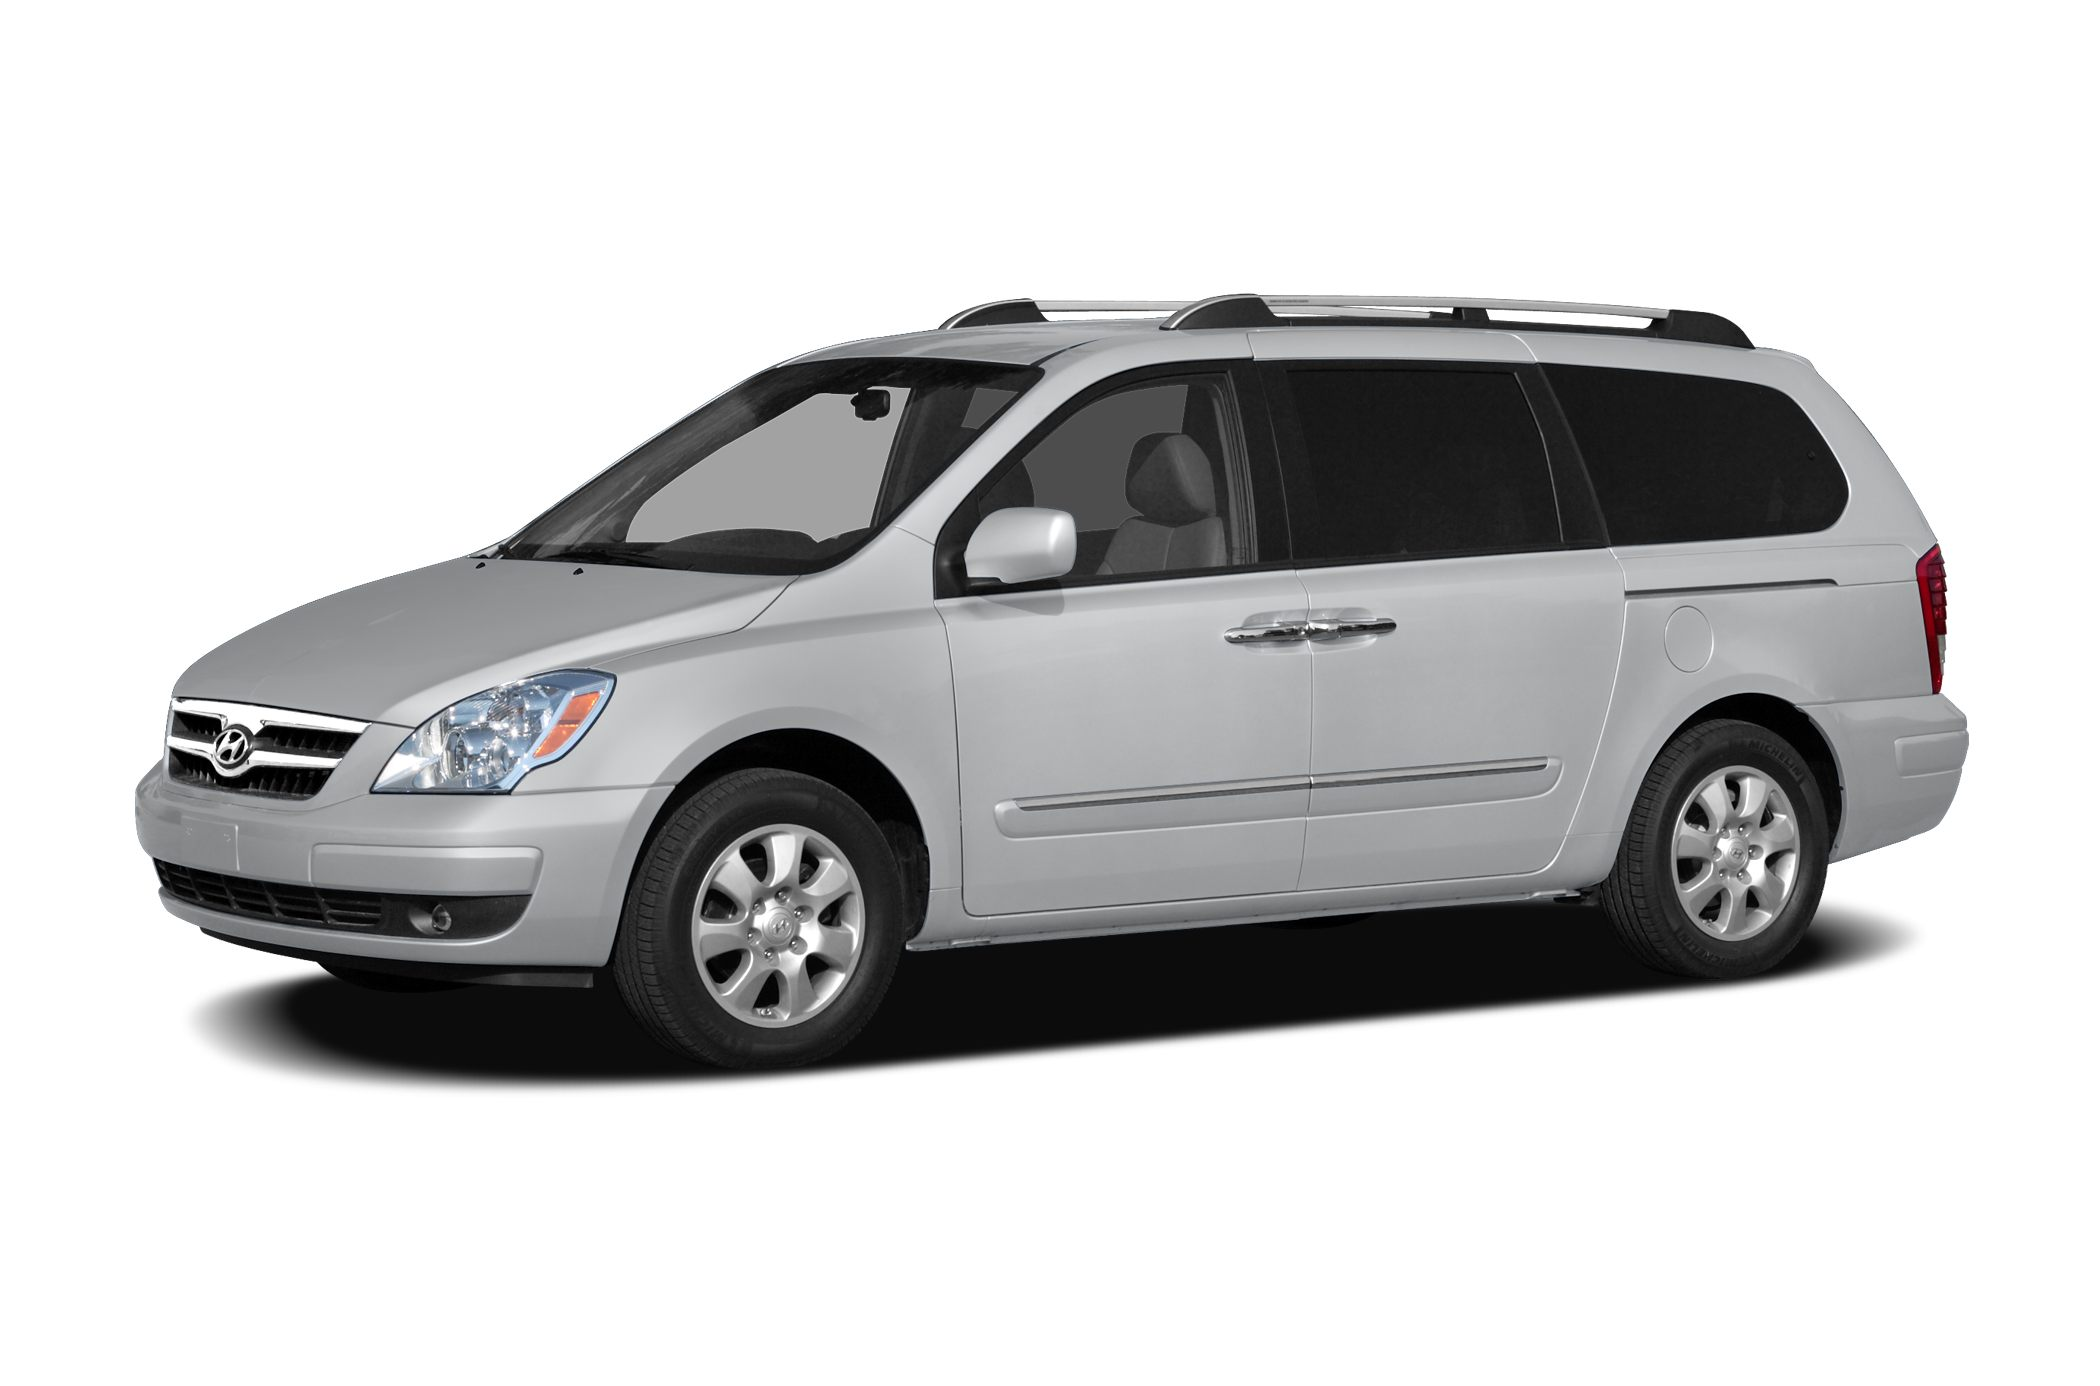 2007 Hyundai Entourage GLS Minivan for sale in Aiea for $8,995 with 95,025 miles